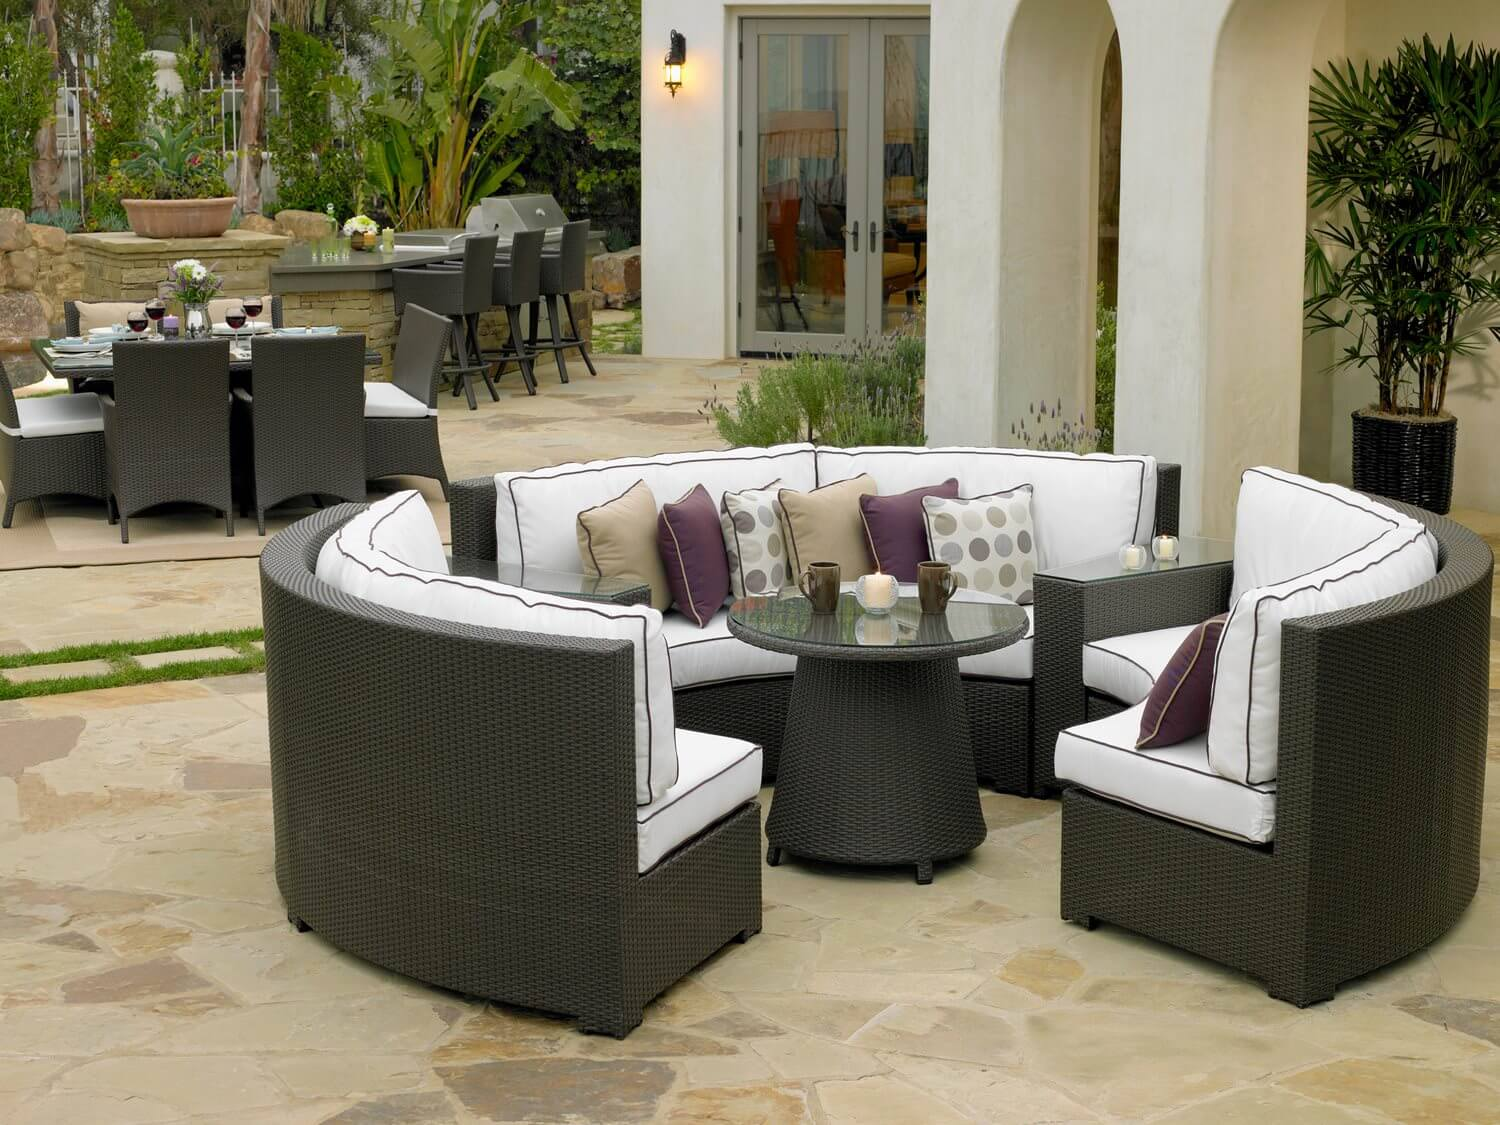 25 Patio Dining Sets Perfect for Spring -